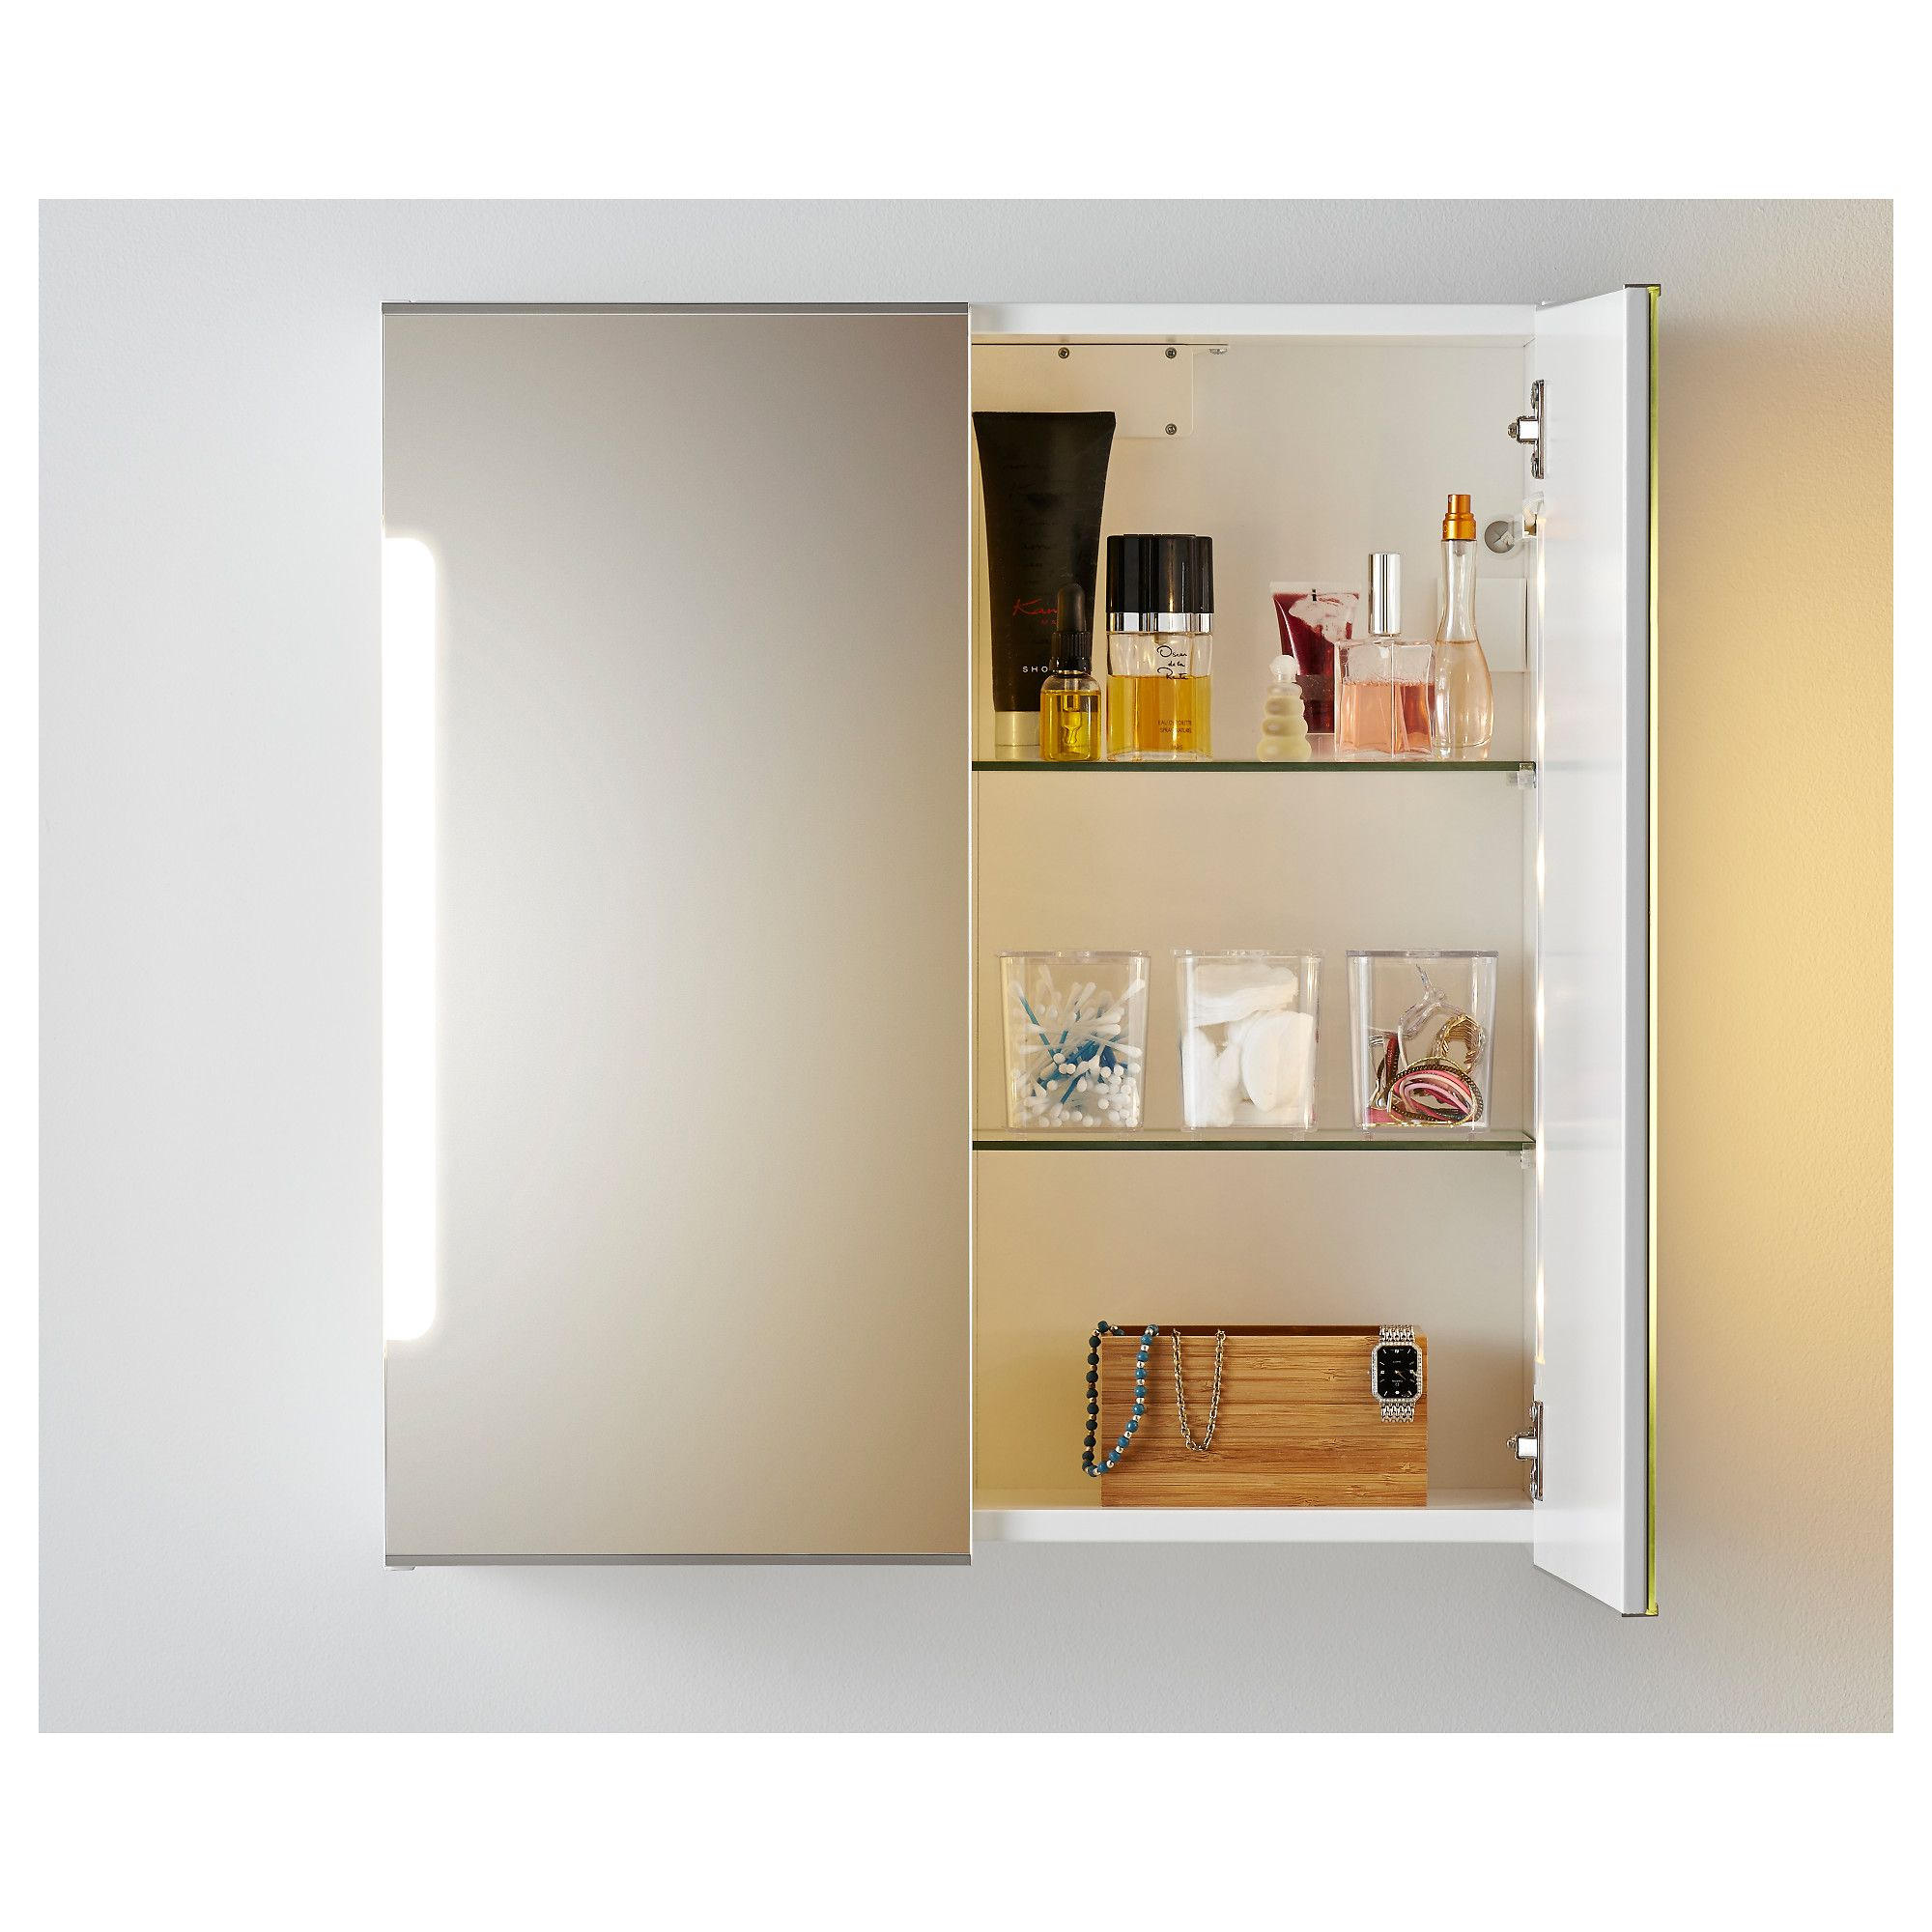 Ikea Storjorm Mirror Cabinet W 2 Doors Light White Products